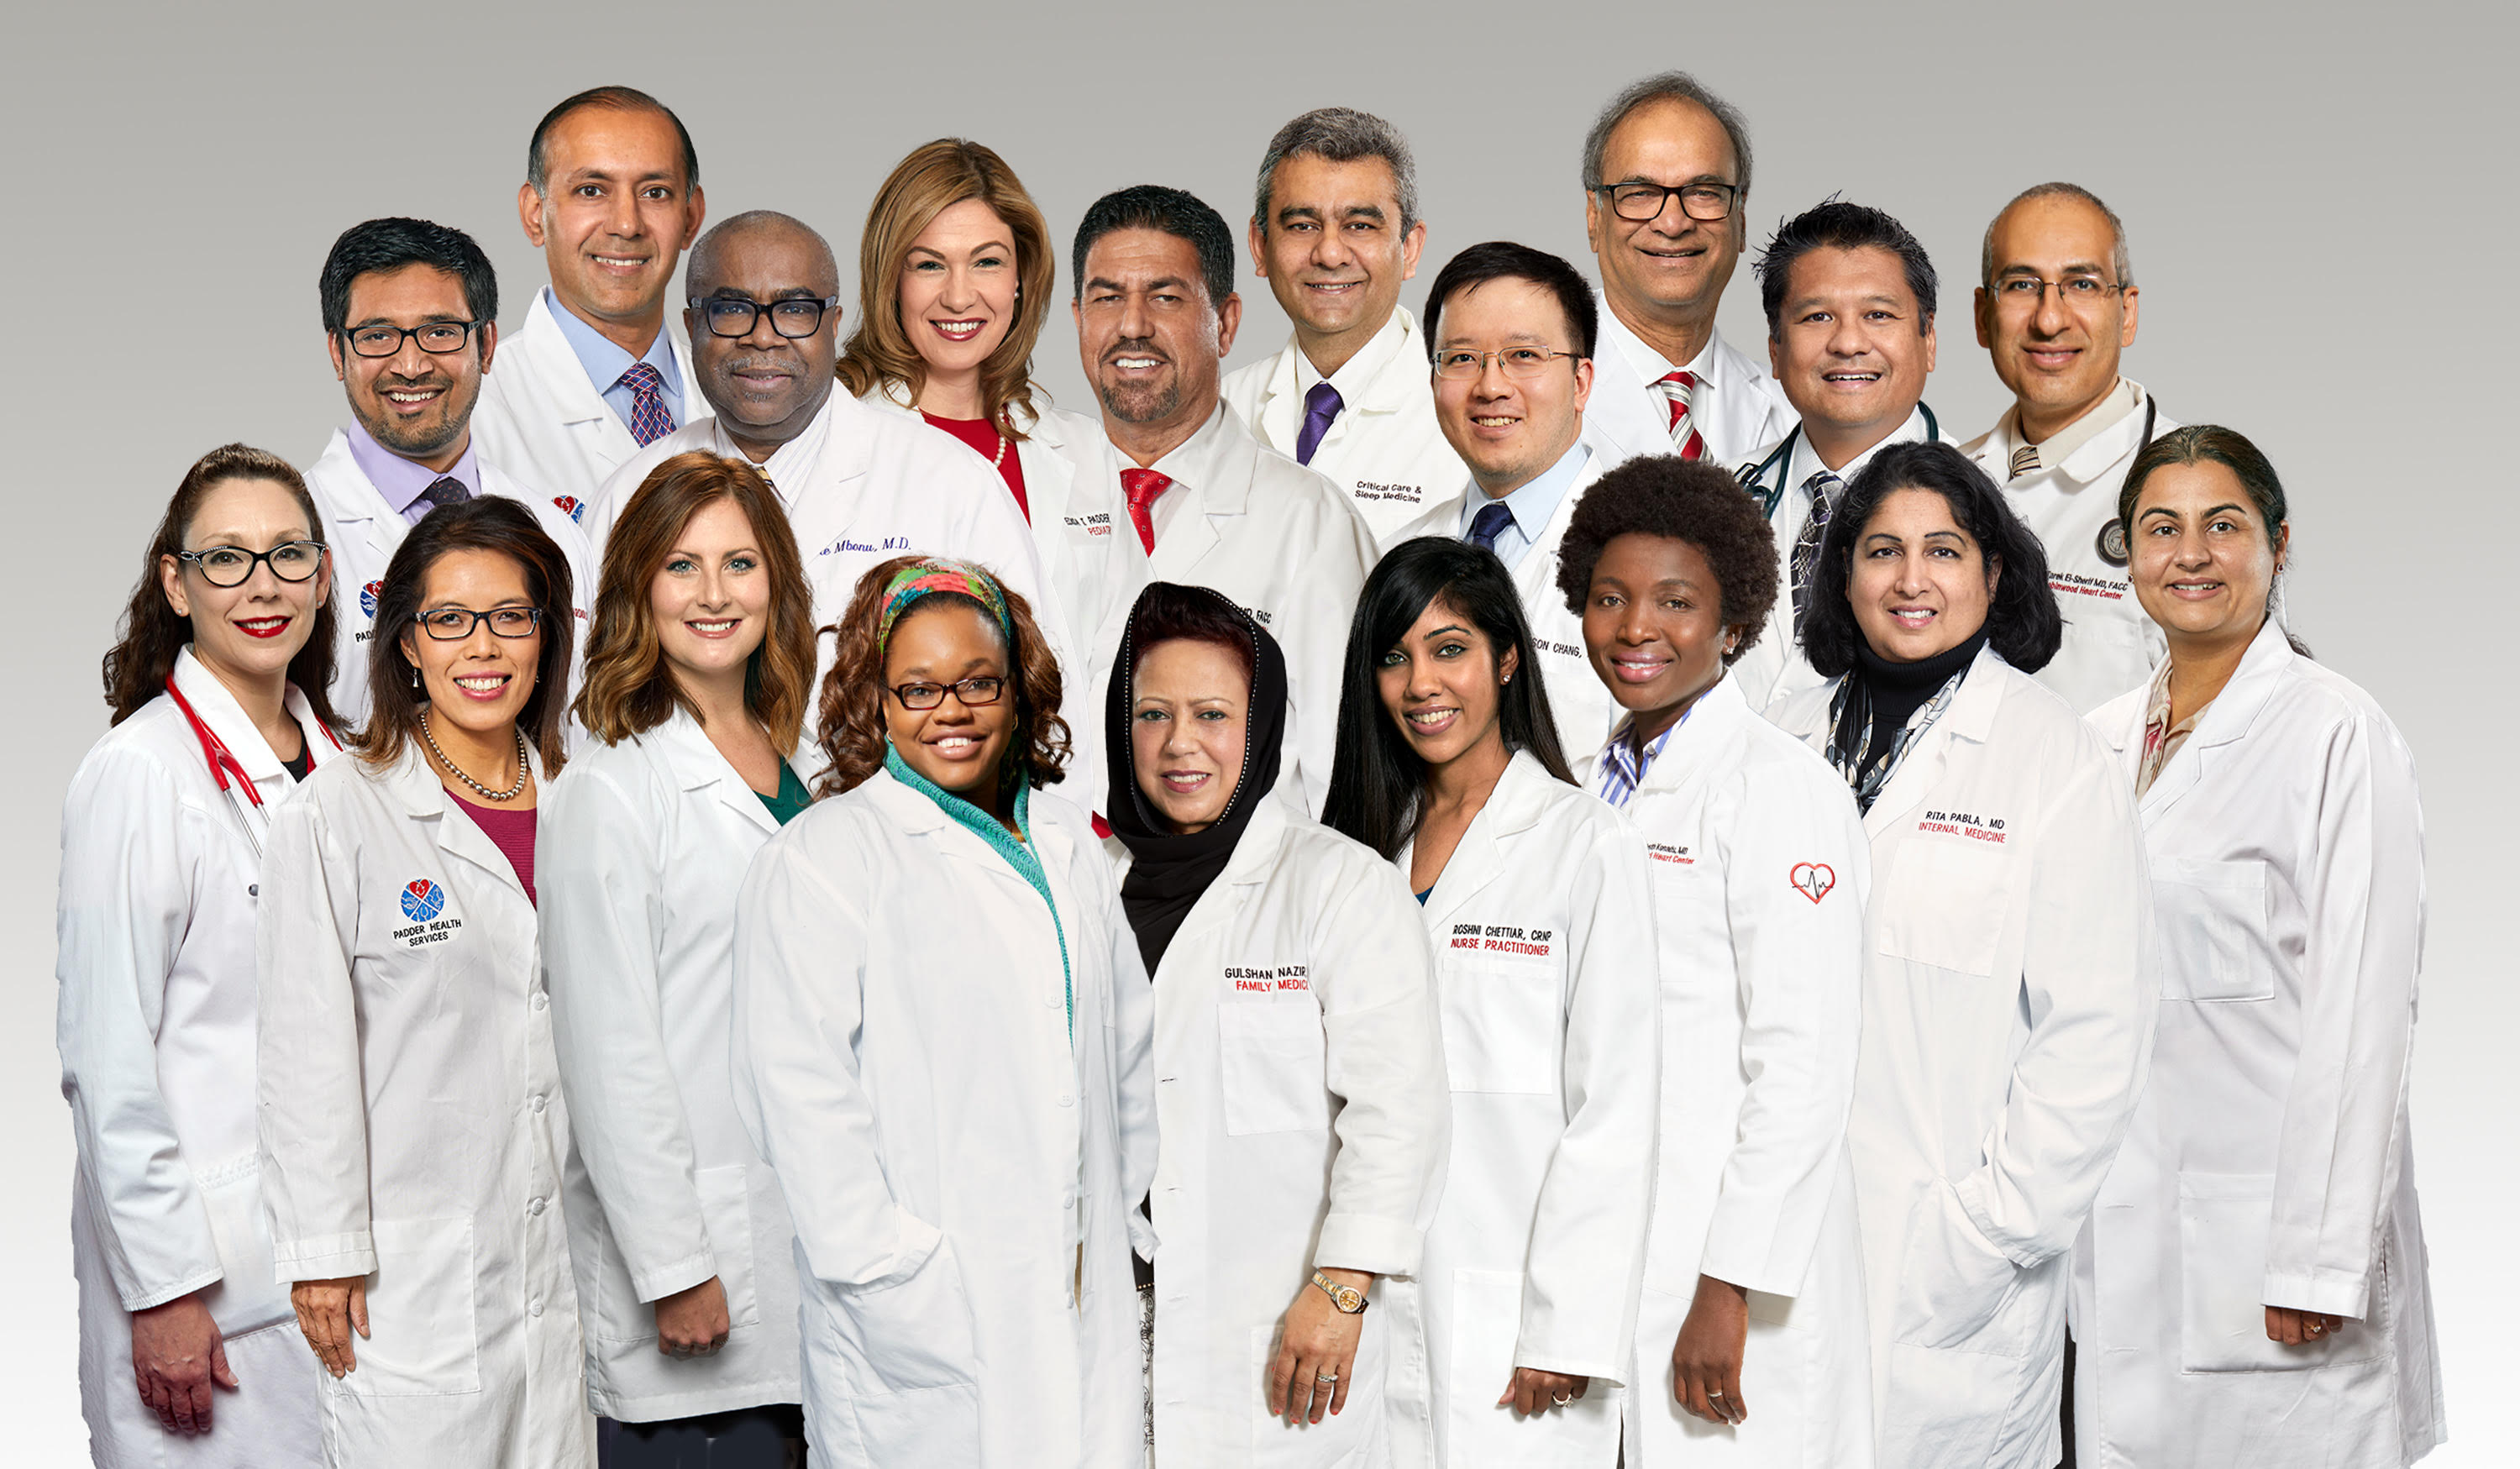 Padder Health Group of Doctors